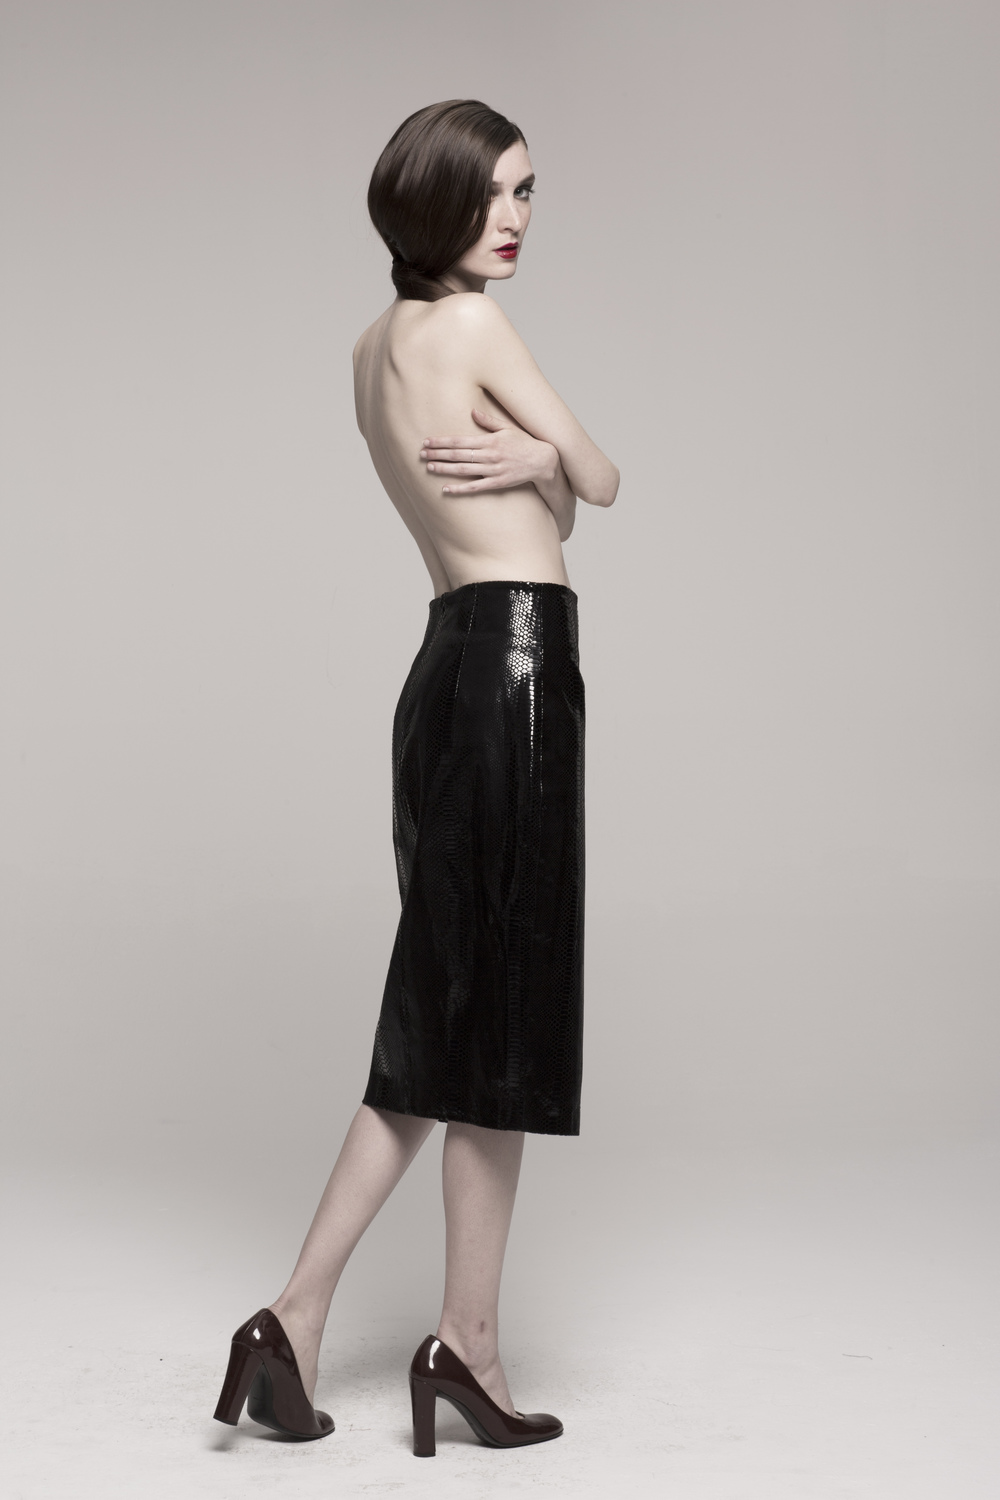 Marine_2016_Pencil_Skirt_427 copy.jpg